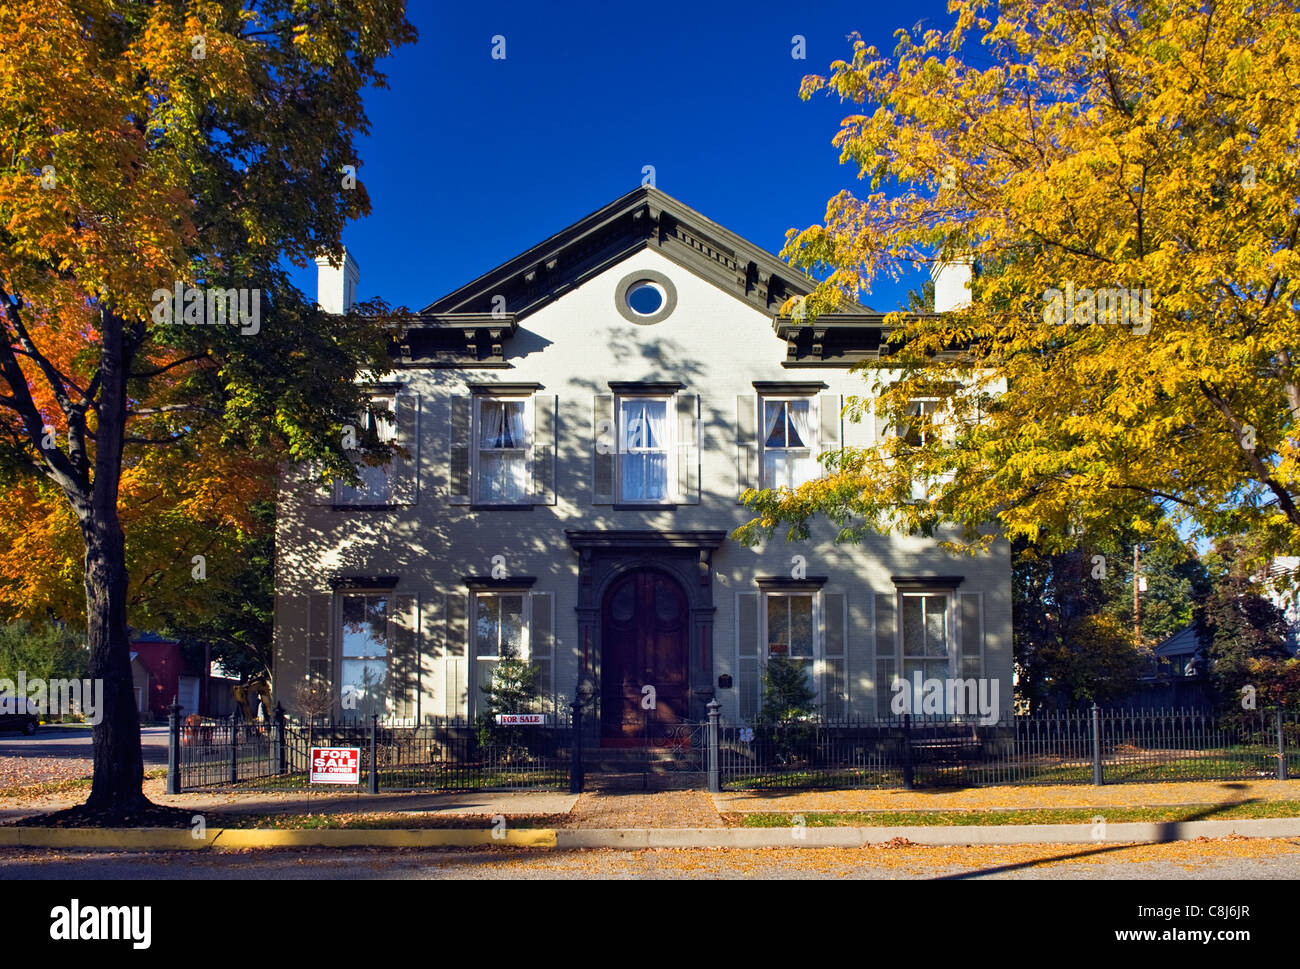 Surprising Stately Home For Sale In Madison Indiana Stock Photo Download Free Architecture Designs Scobabritishbridgeorg